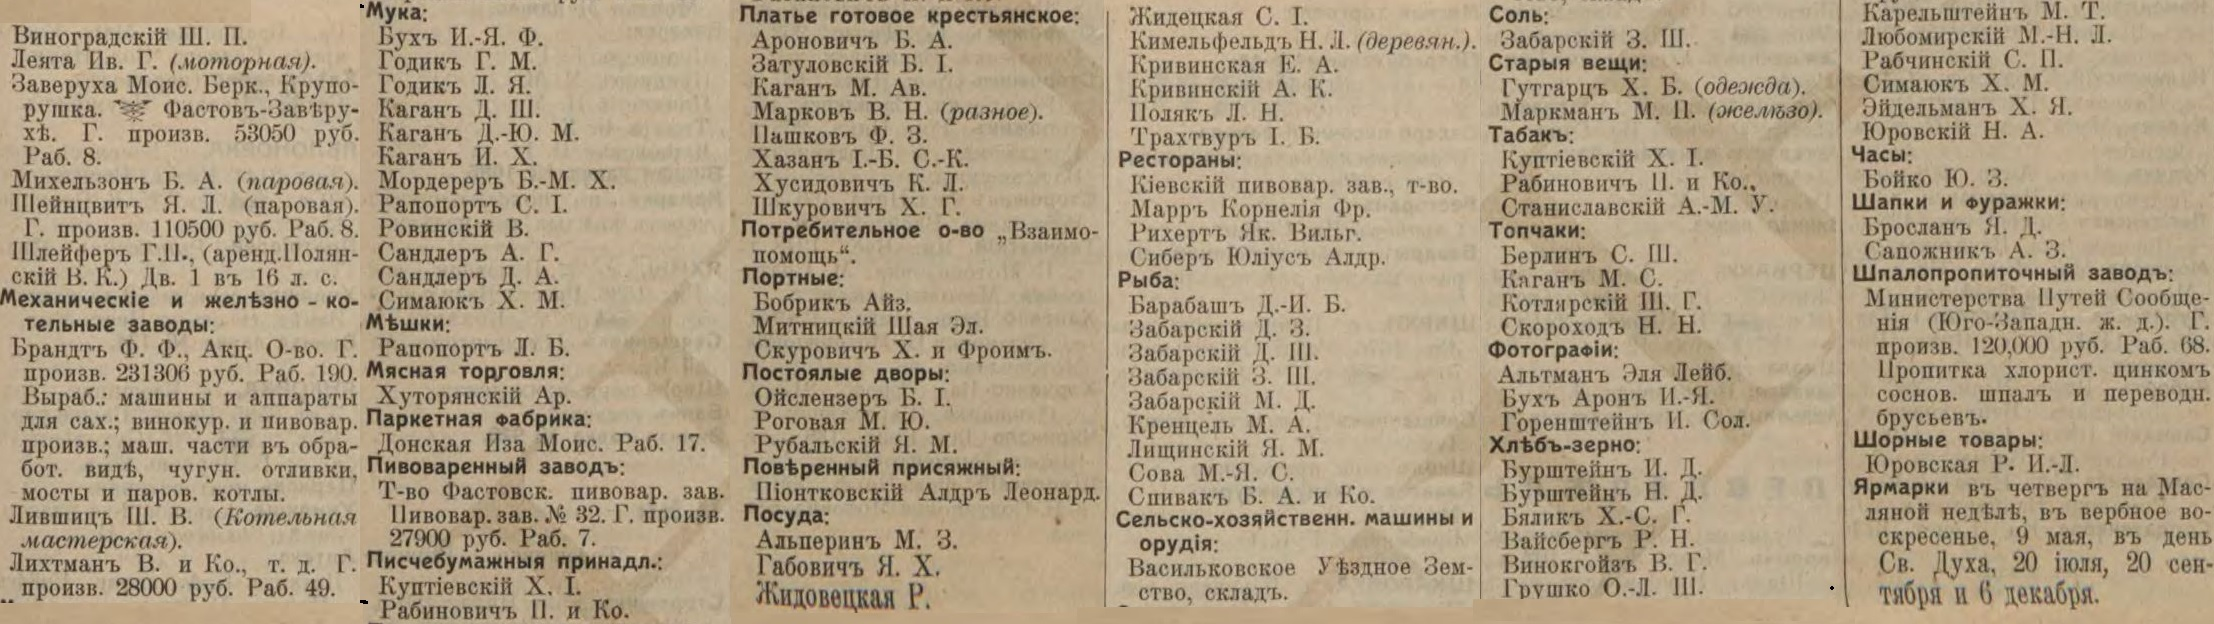 Fastov entrepreneurs list from Russian Empire Business Directories by 1913. Page 2